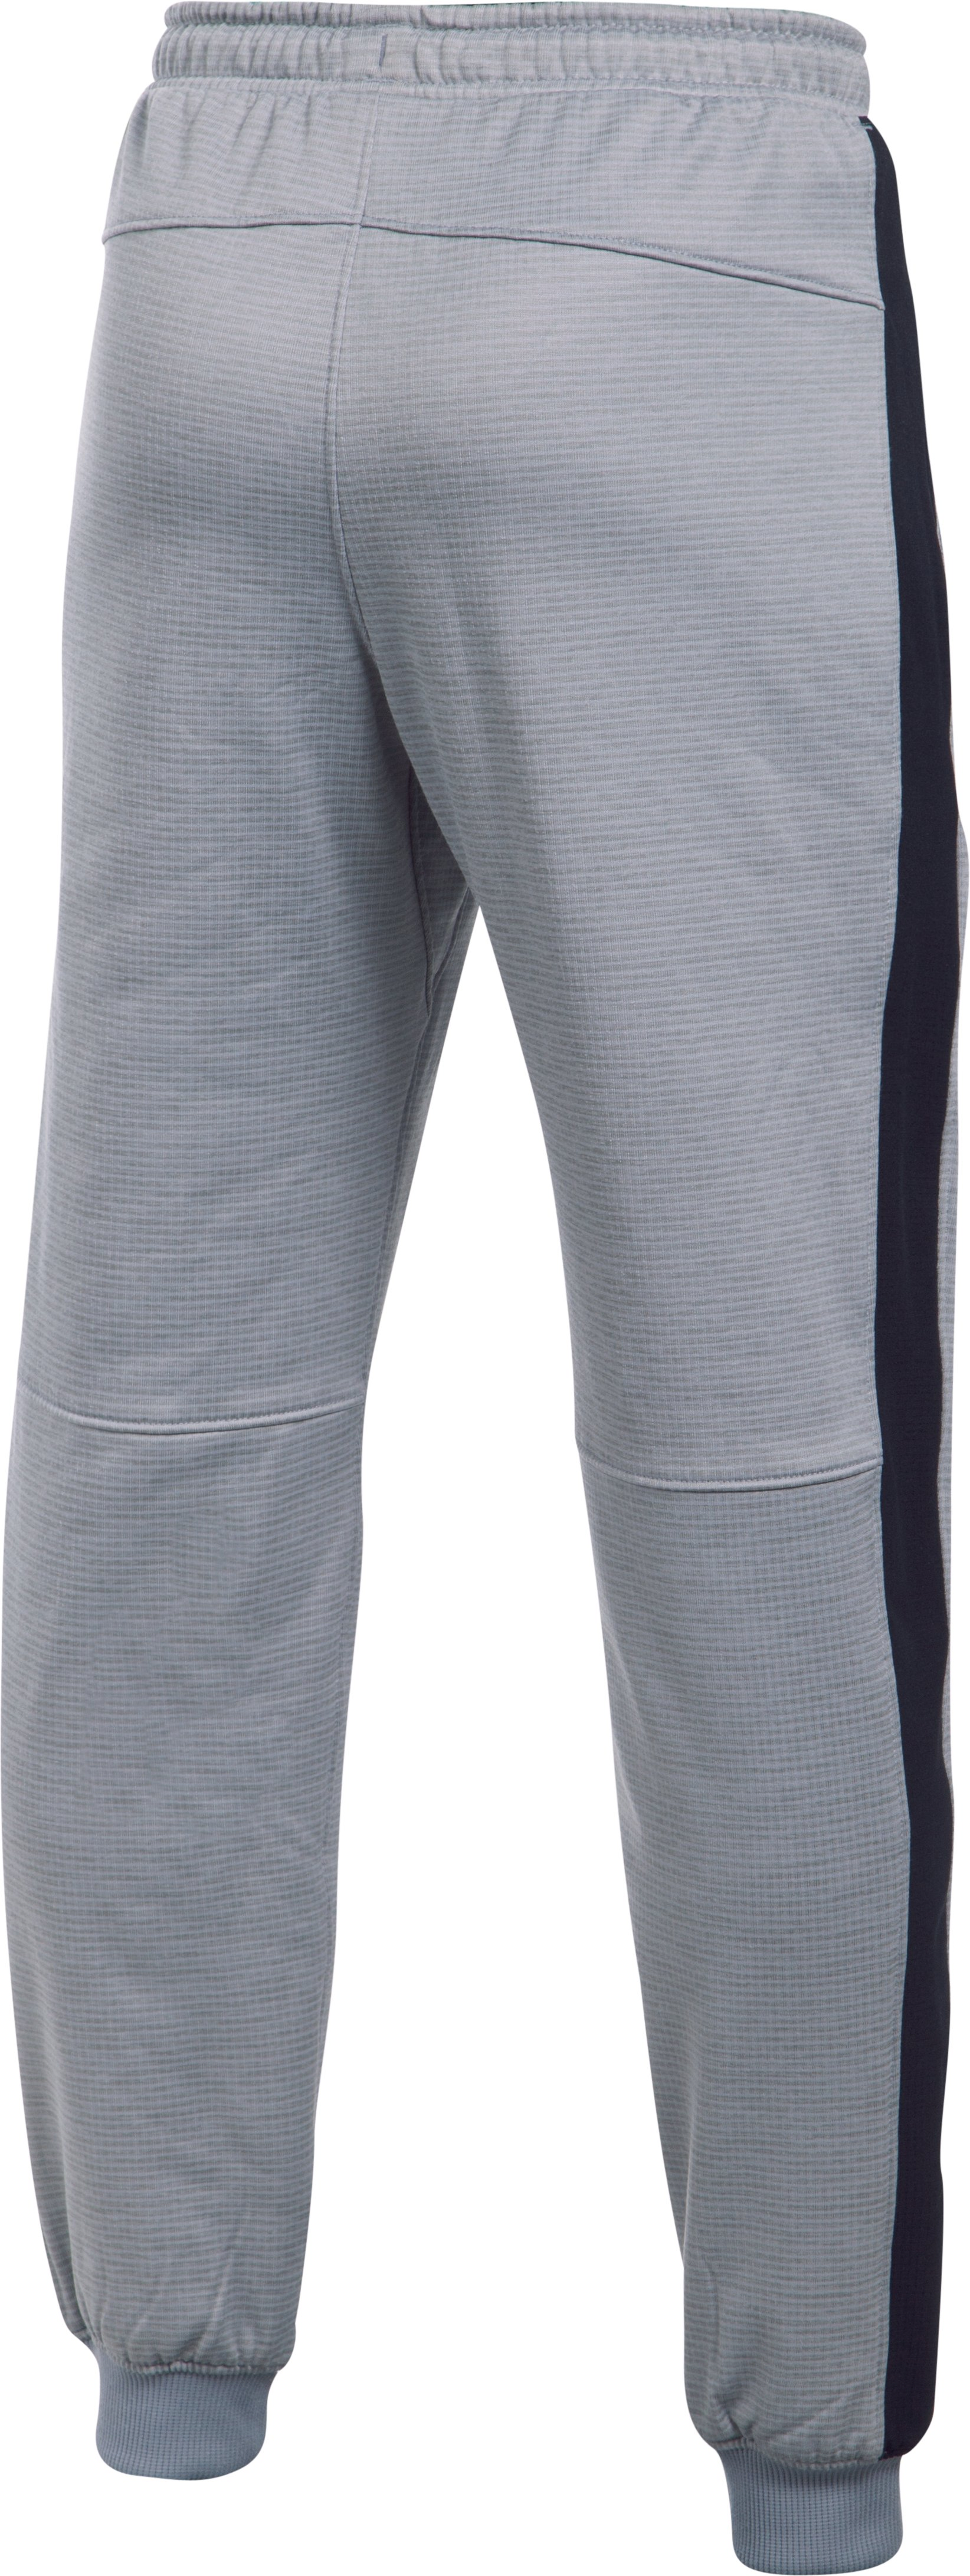 Boys' ColdGear® Reactor Pants, STEEL LIGHT HEATHER, undefined